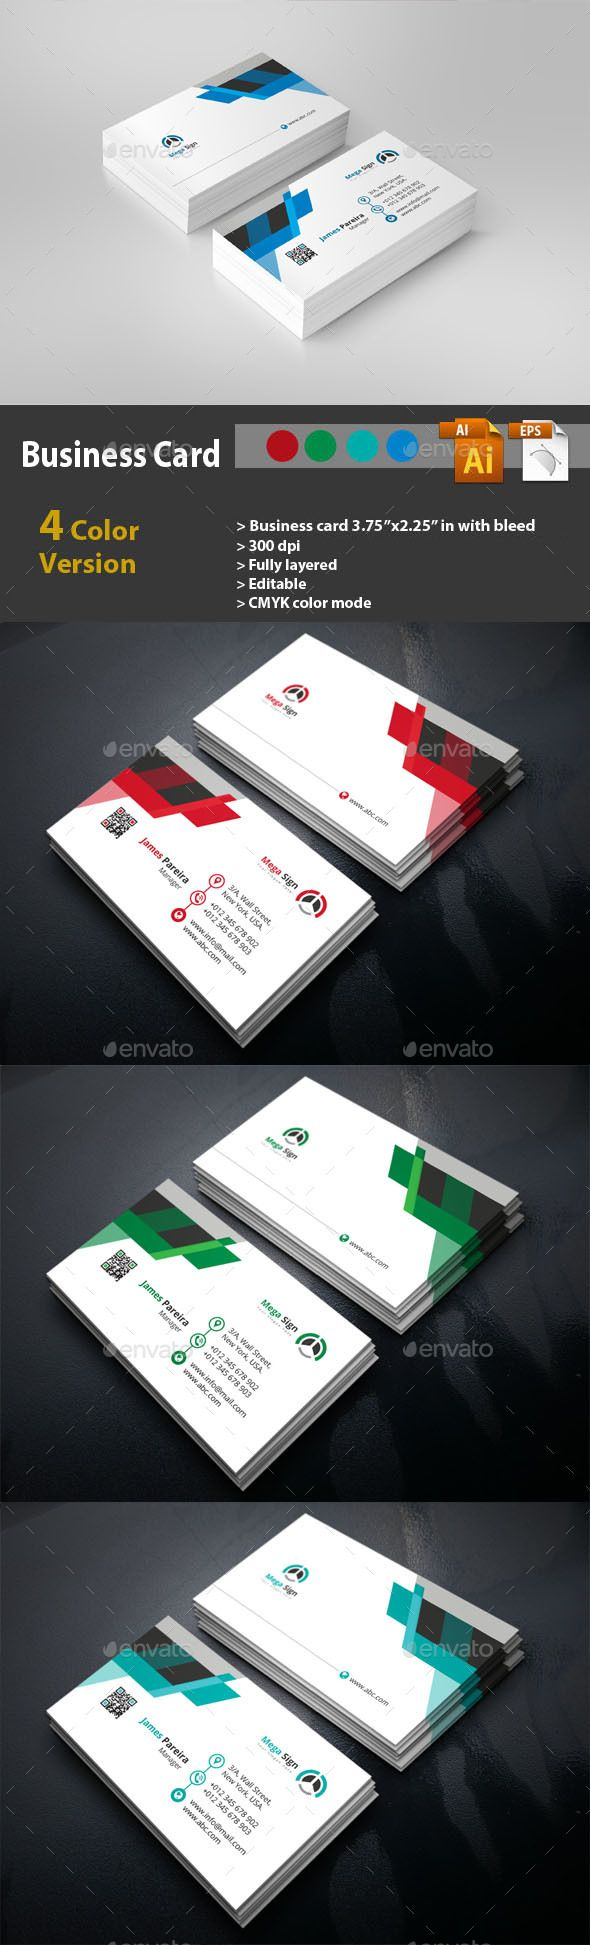 60 best business card inspiration images on pinterest business card business cards print templates download here httpsgraphicriver magicingreecefo Gallery